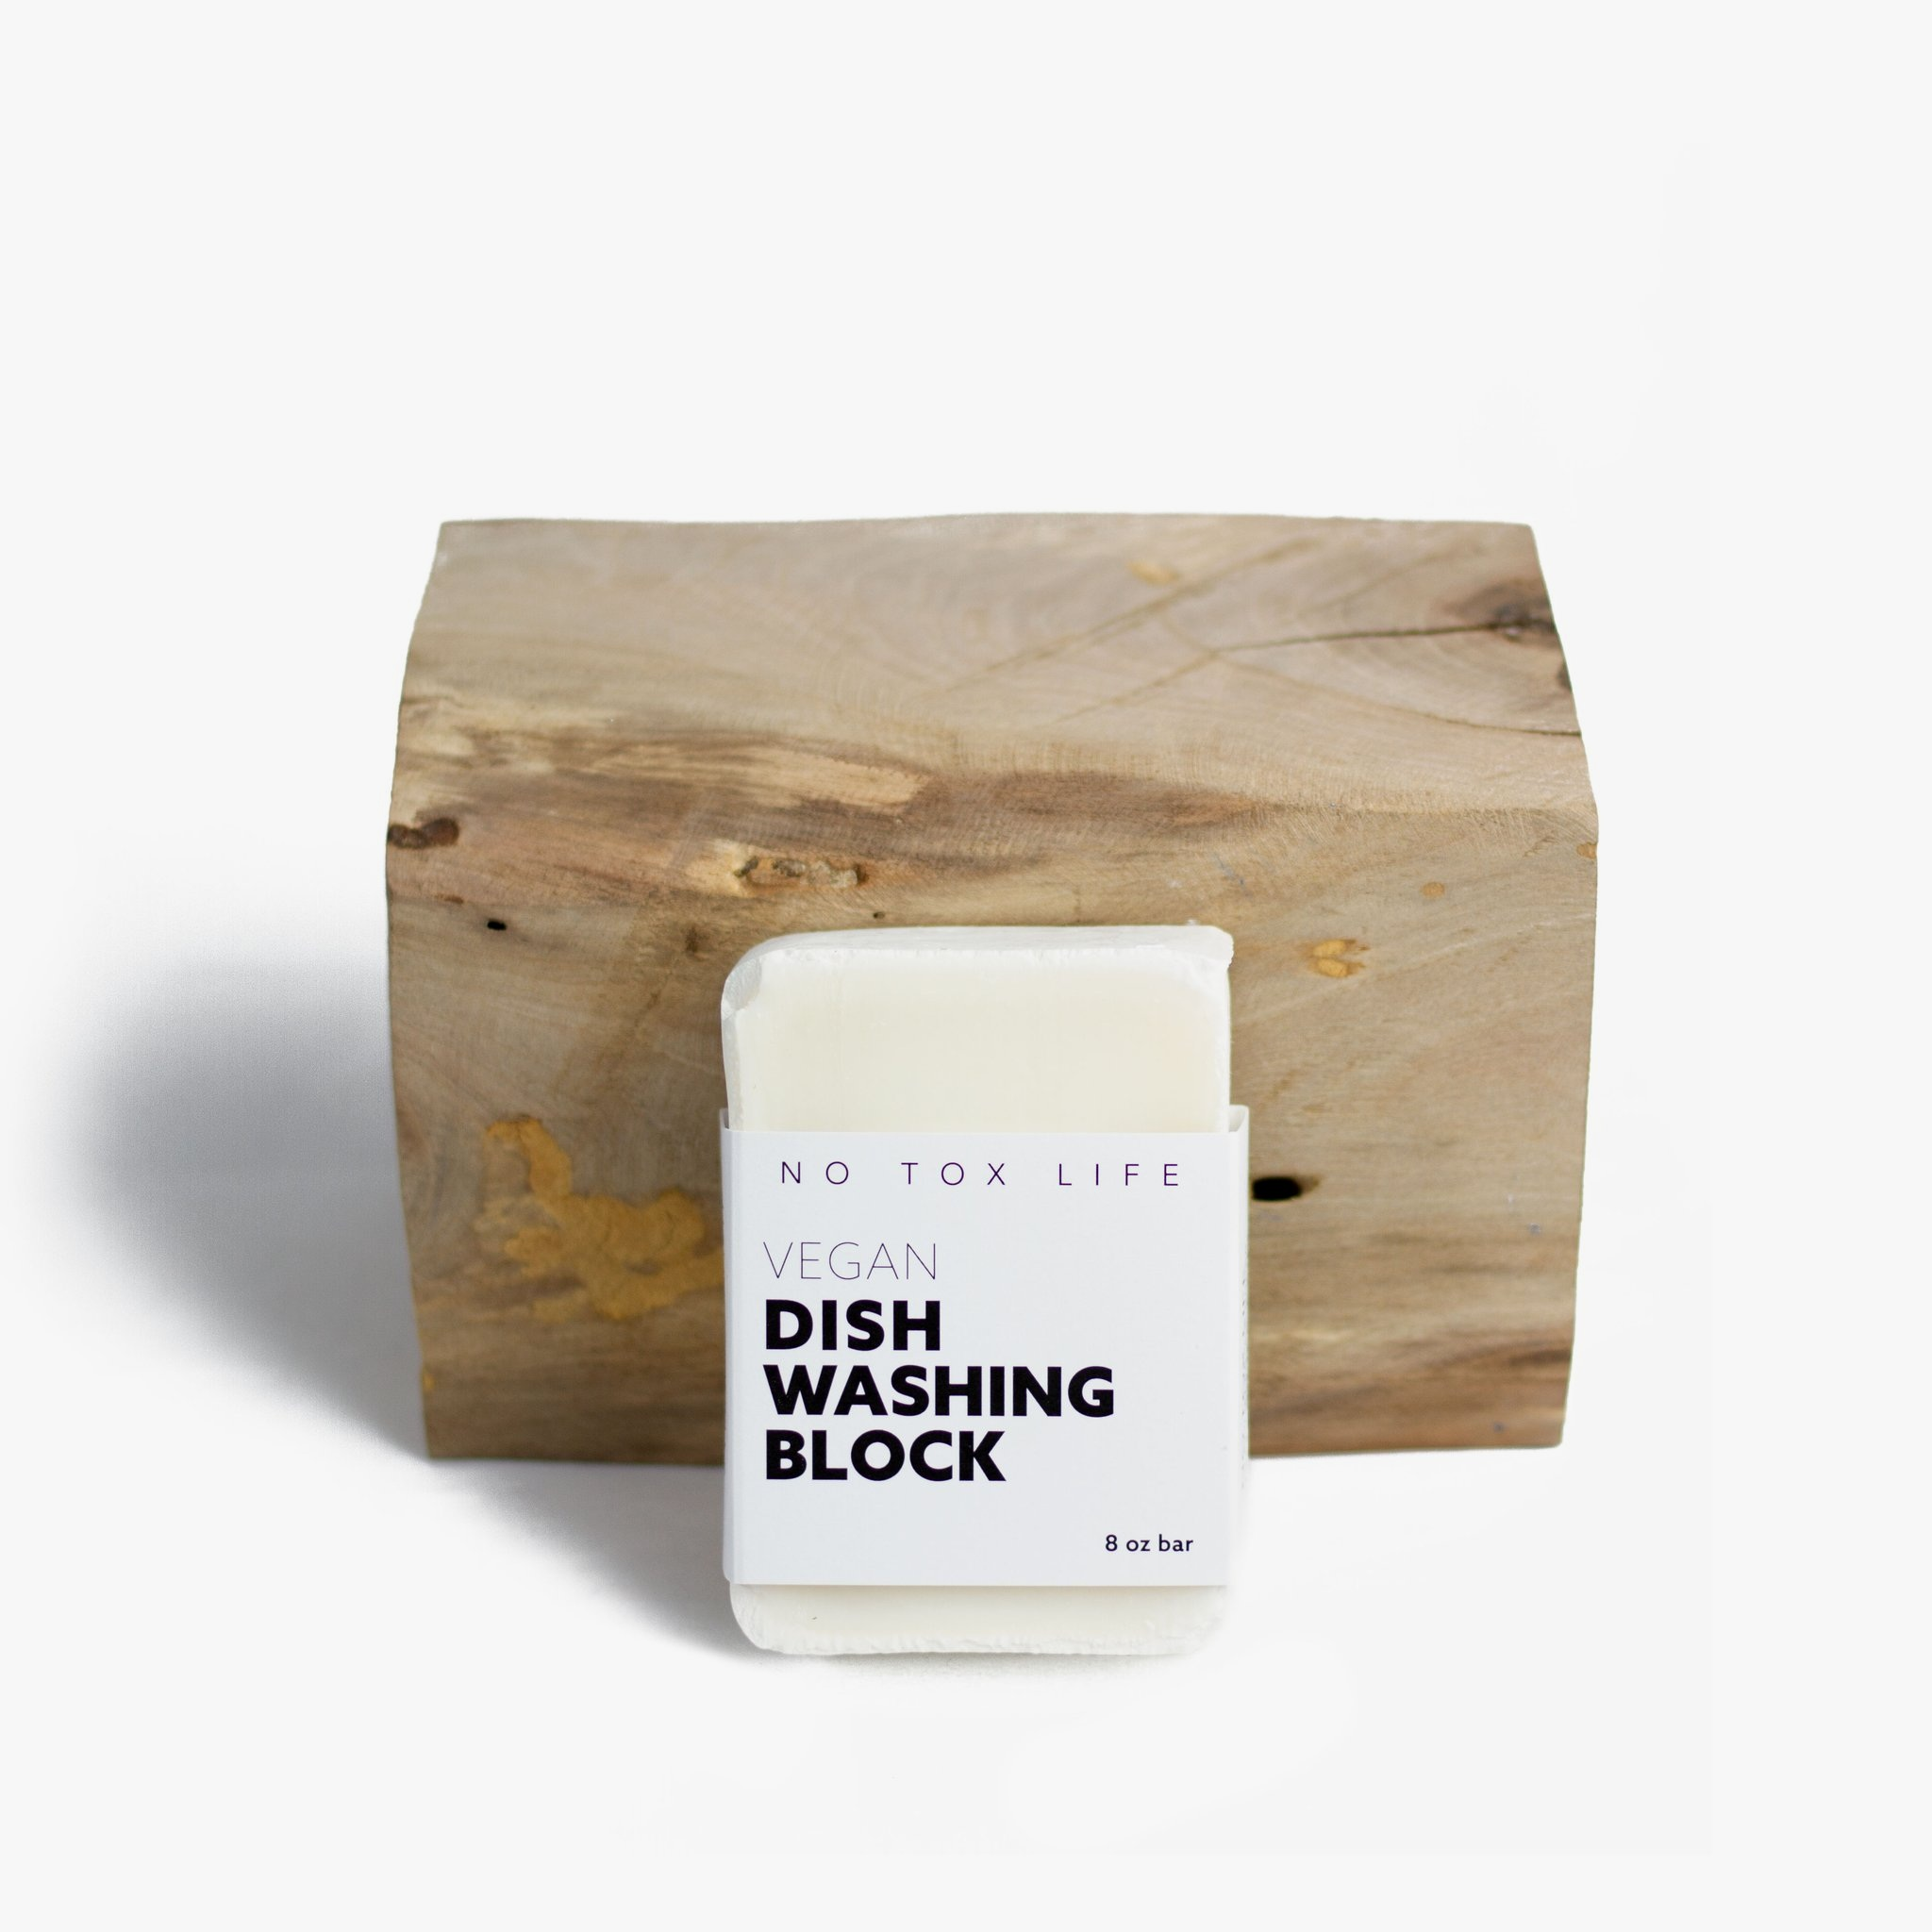 Vegan Dish Washing Bar Soap from No Tox Life and Well Earth Goods